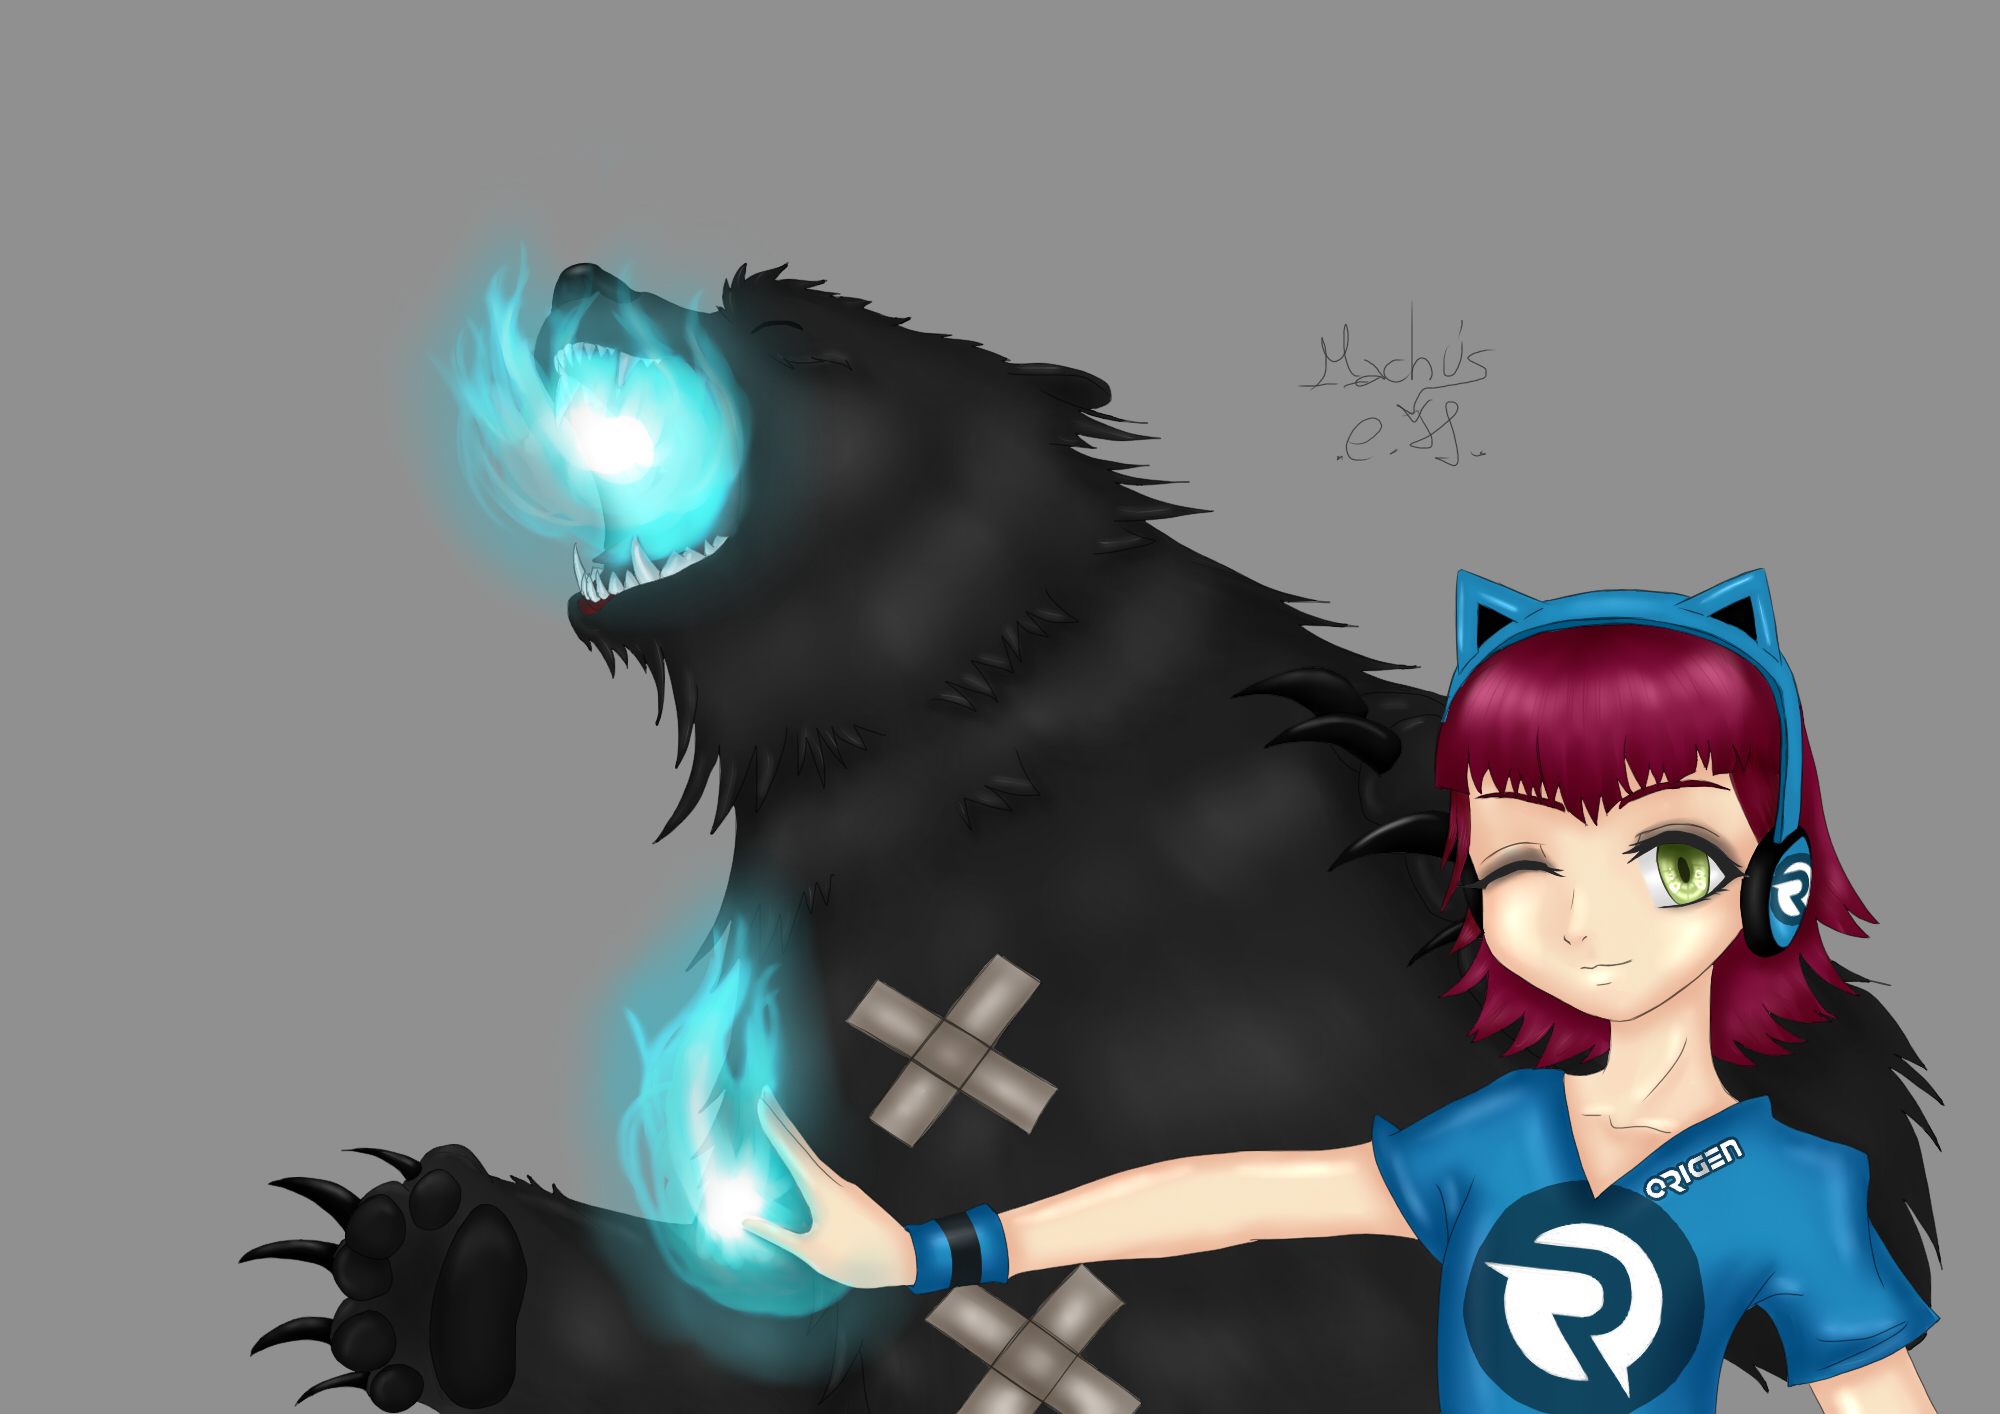 Annie and Tibbers - Origen by Machus-san